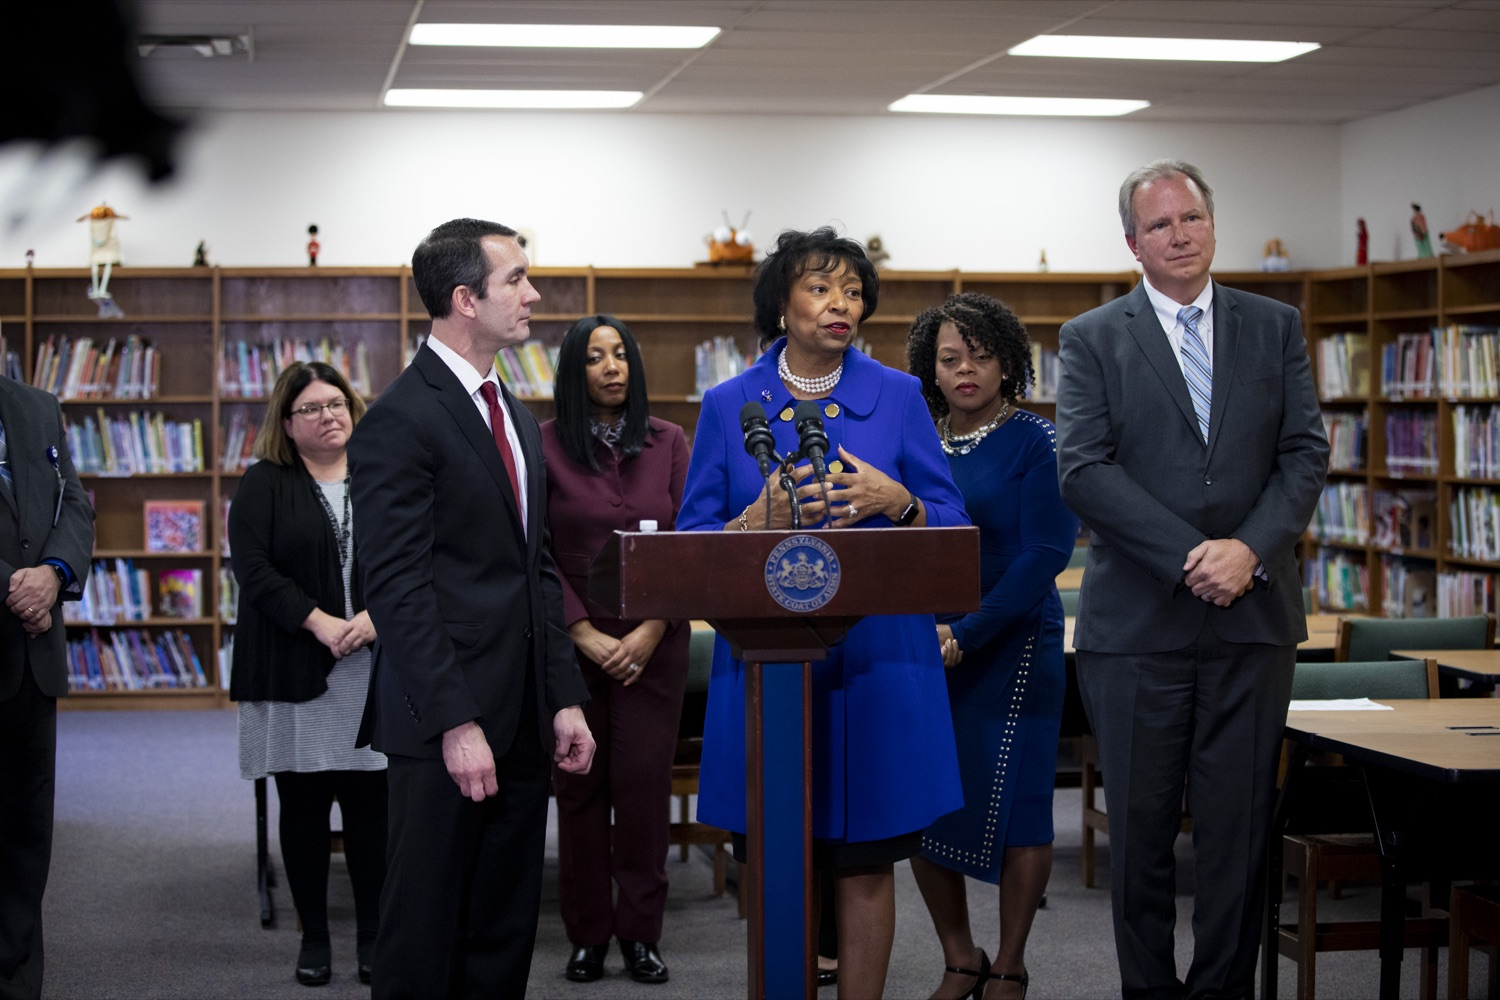 "<a href=""https://filesource.wostreaming.net/commonwealthofpa/photo/17611_AUD_GEN_HBG_AUDIT_UPDATE_CZ_13.JPG"" target=""_blank"">⇣ Download Photo<br></a>Harrisburg School District Receiver Janet C. Samuels affirms the district's commitment for continued improvement, at Foose Elementary School in Harrisburg on November 25, 2019."